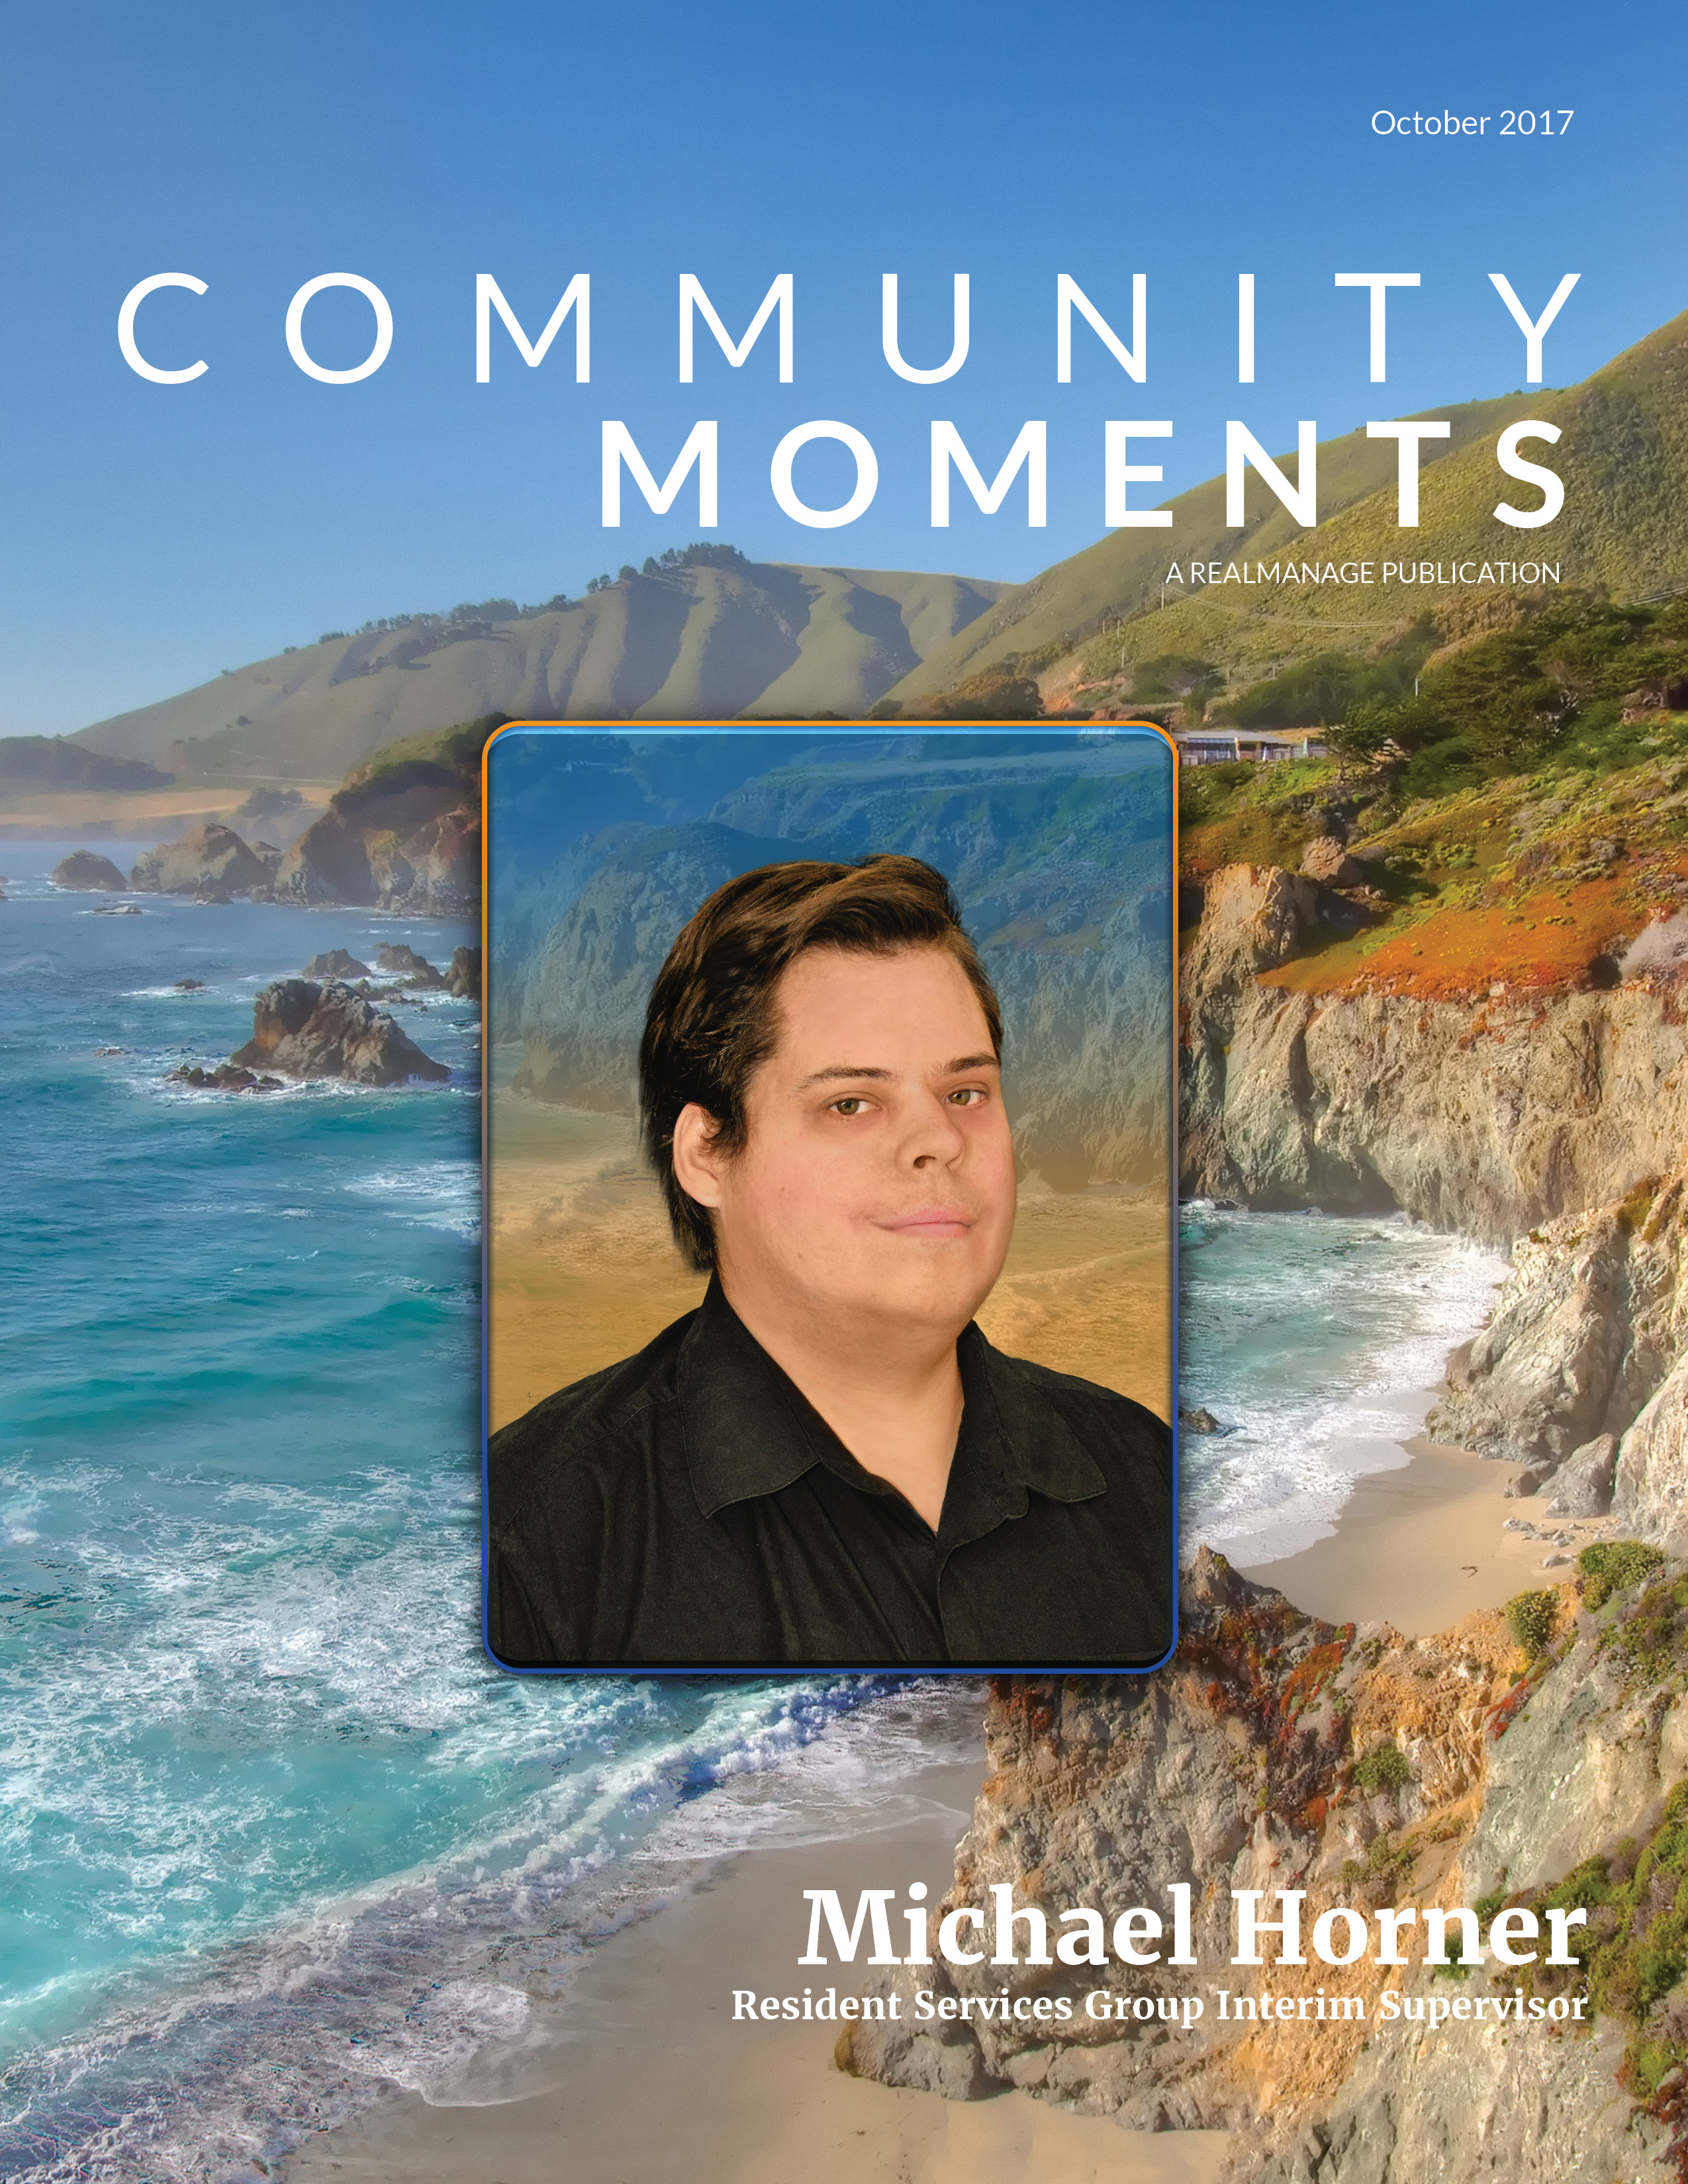 October 2017, Community Moments Magazine